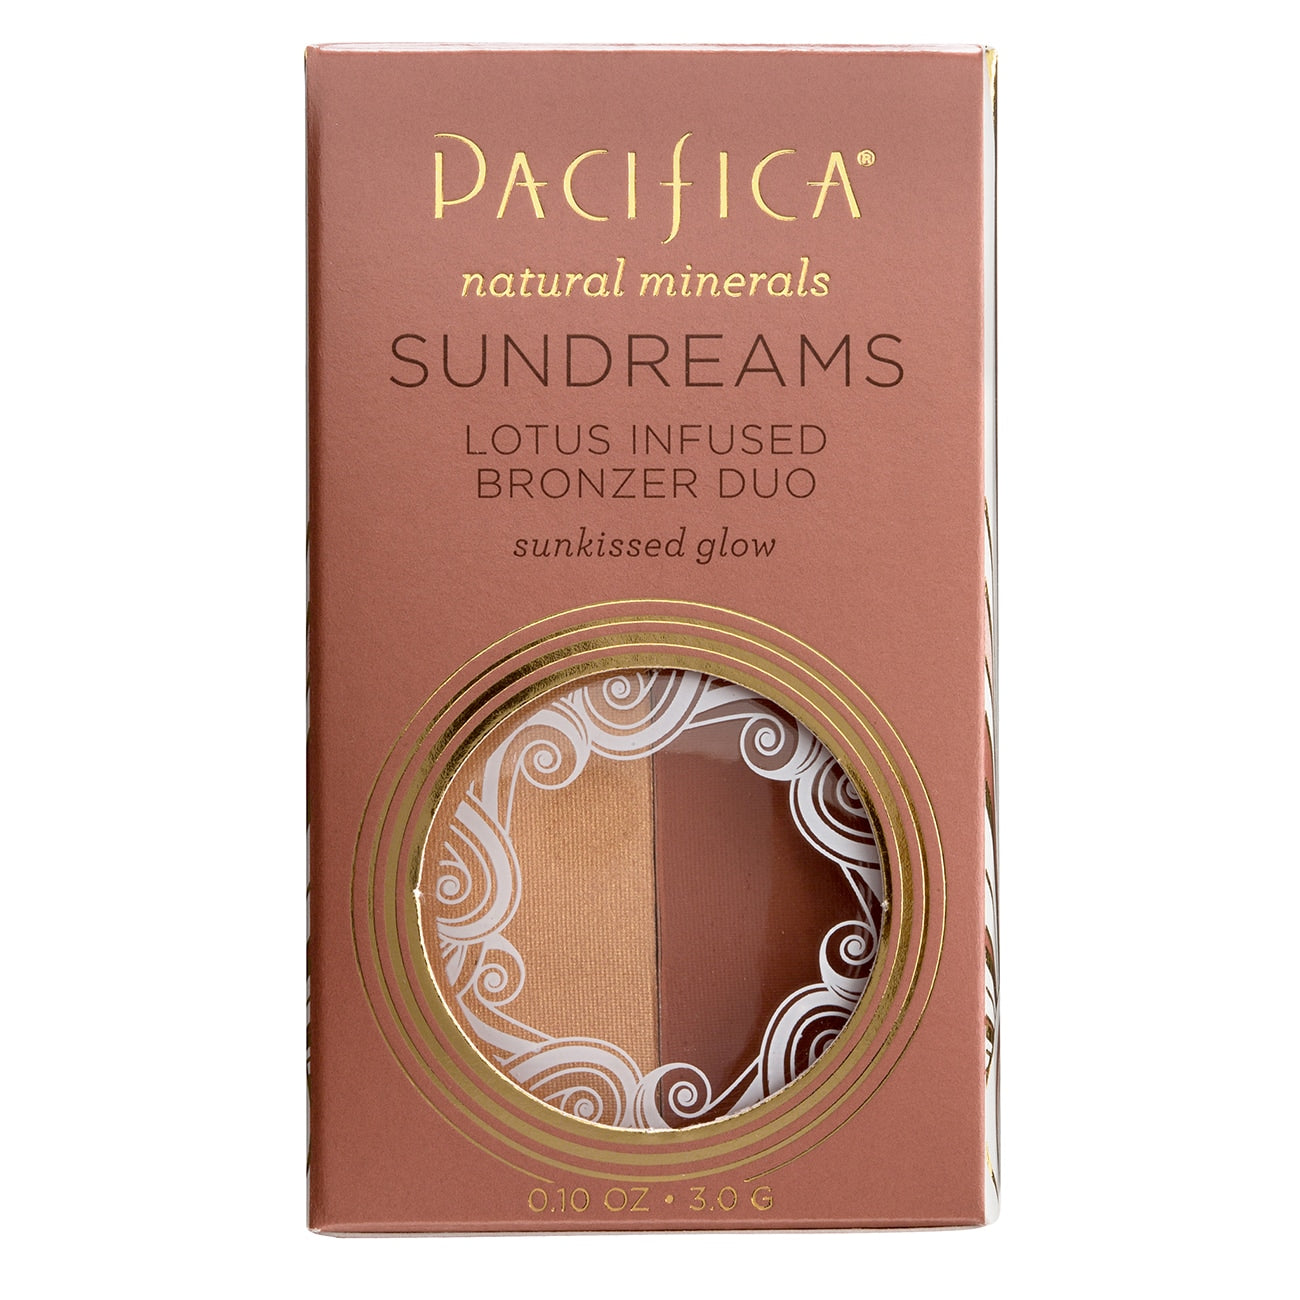 Sundreams Lotus Infused Bronzer Duo